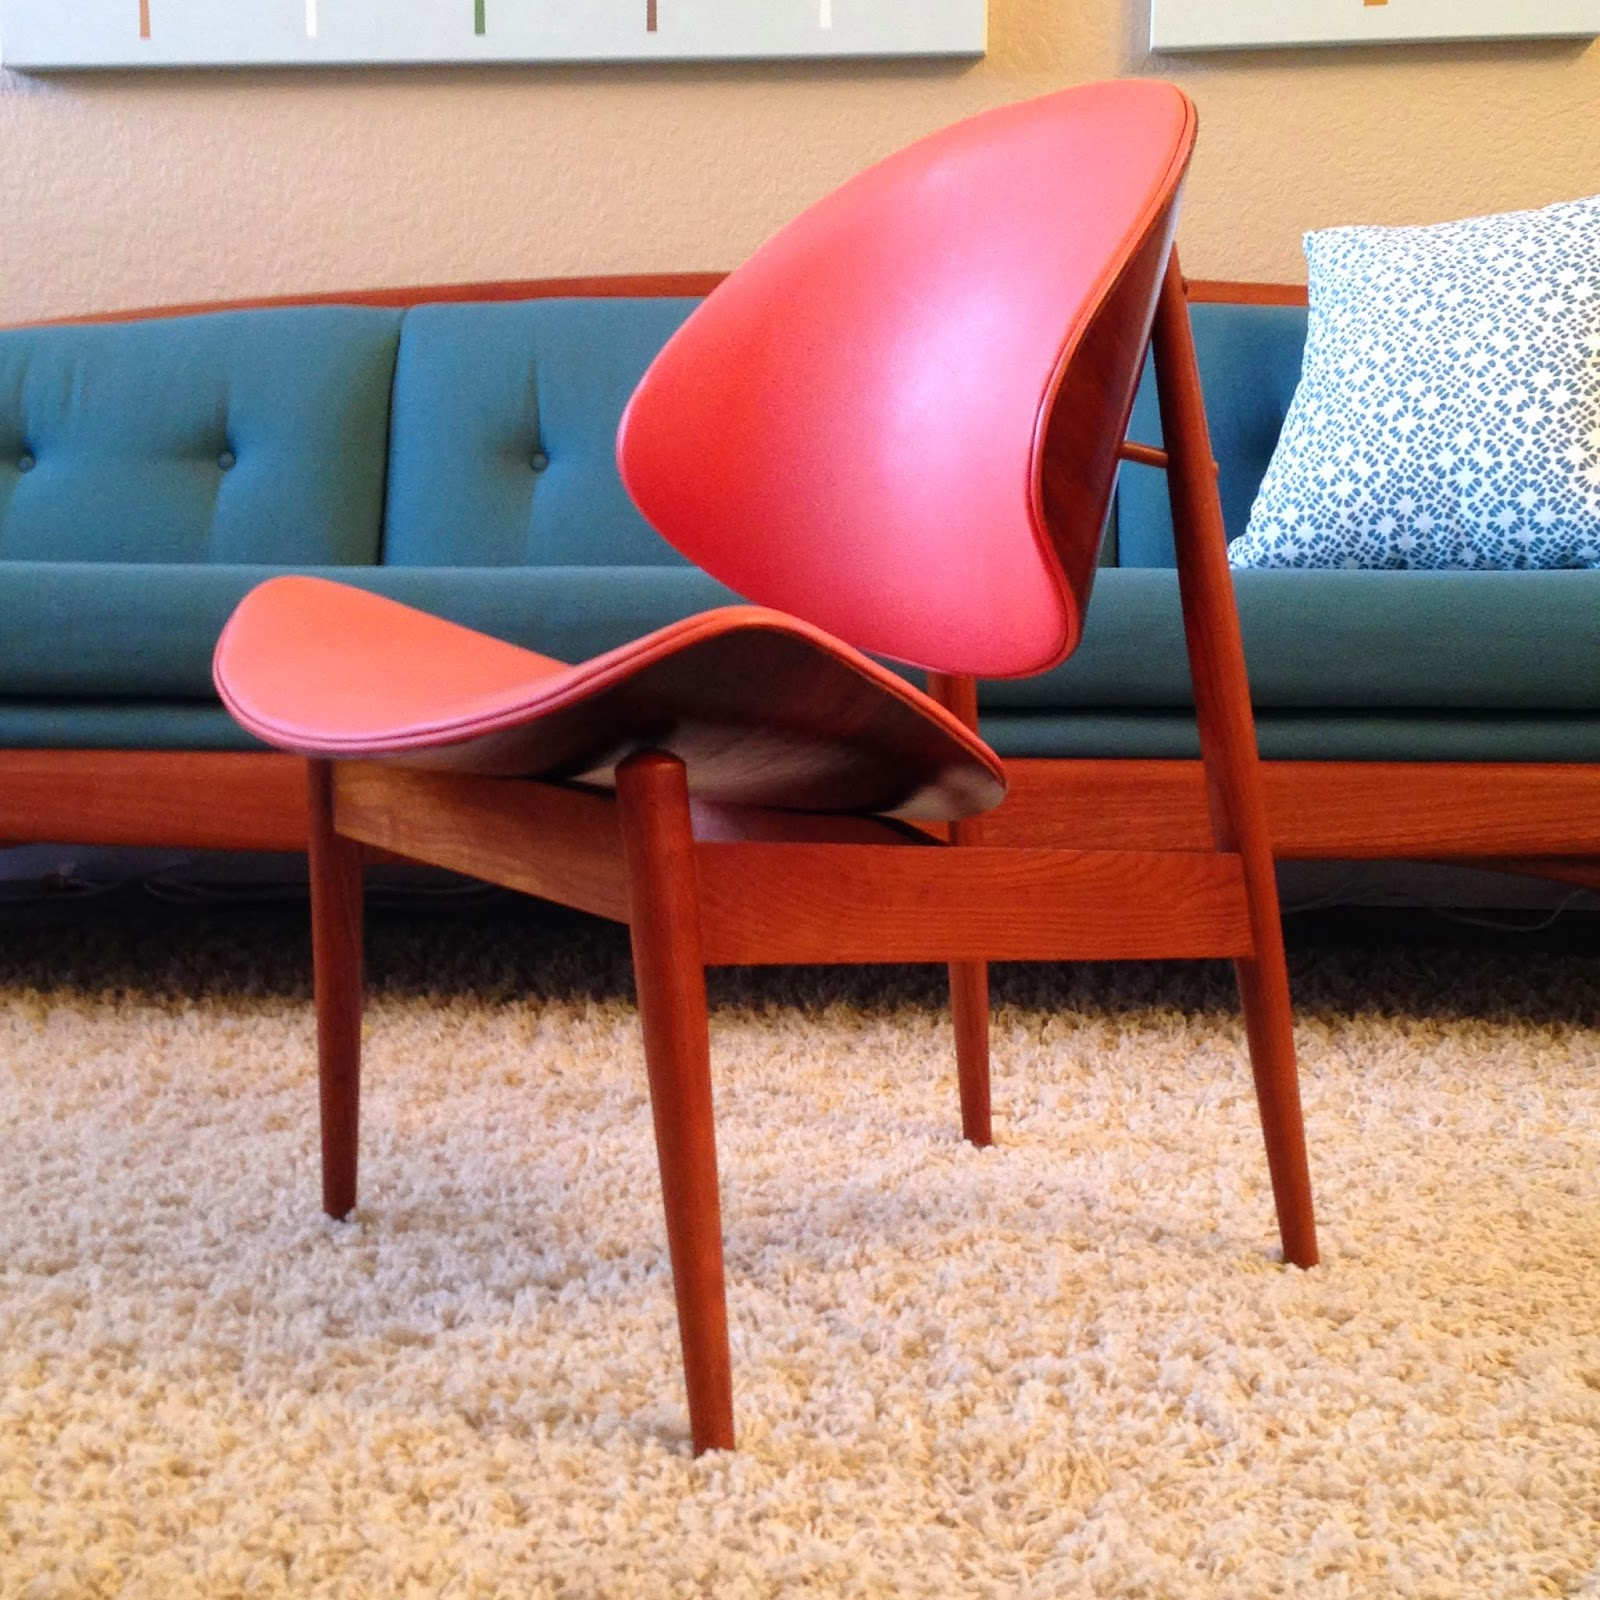 Clamshell Chair Designed By Seymour James Weiner